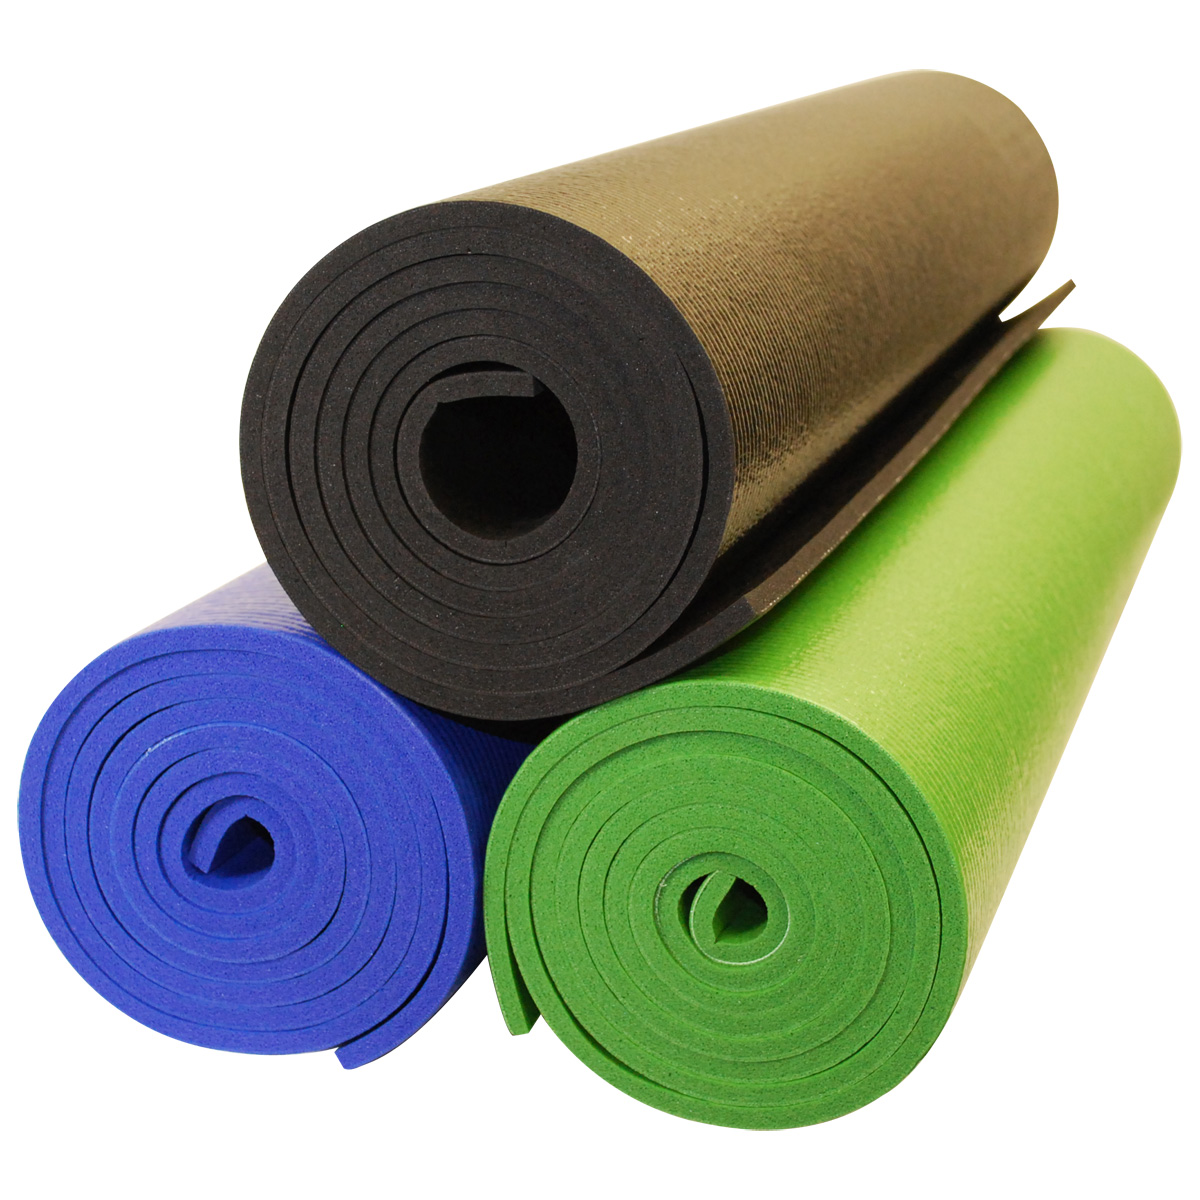 Yoga Accessories Premium Weight Yoga Mat Buy One Get One